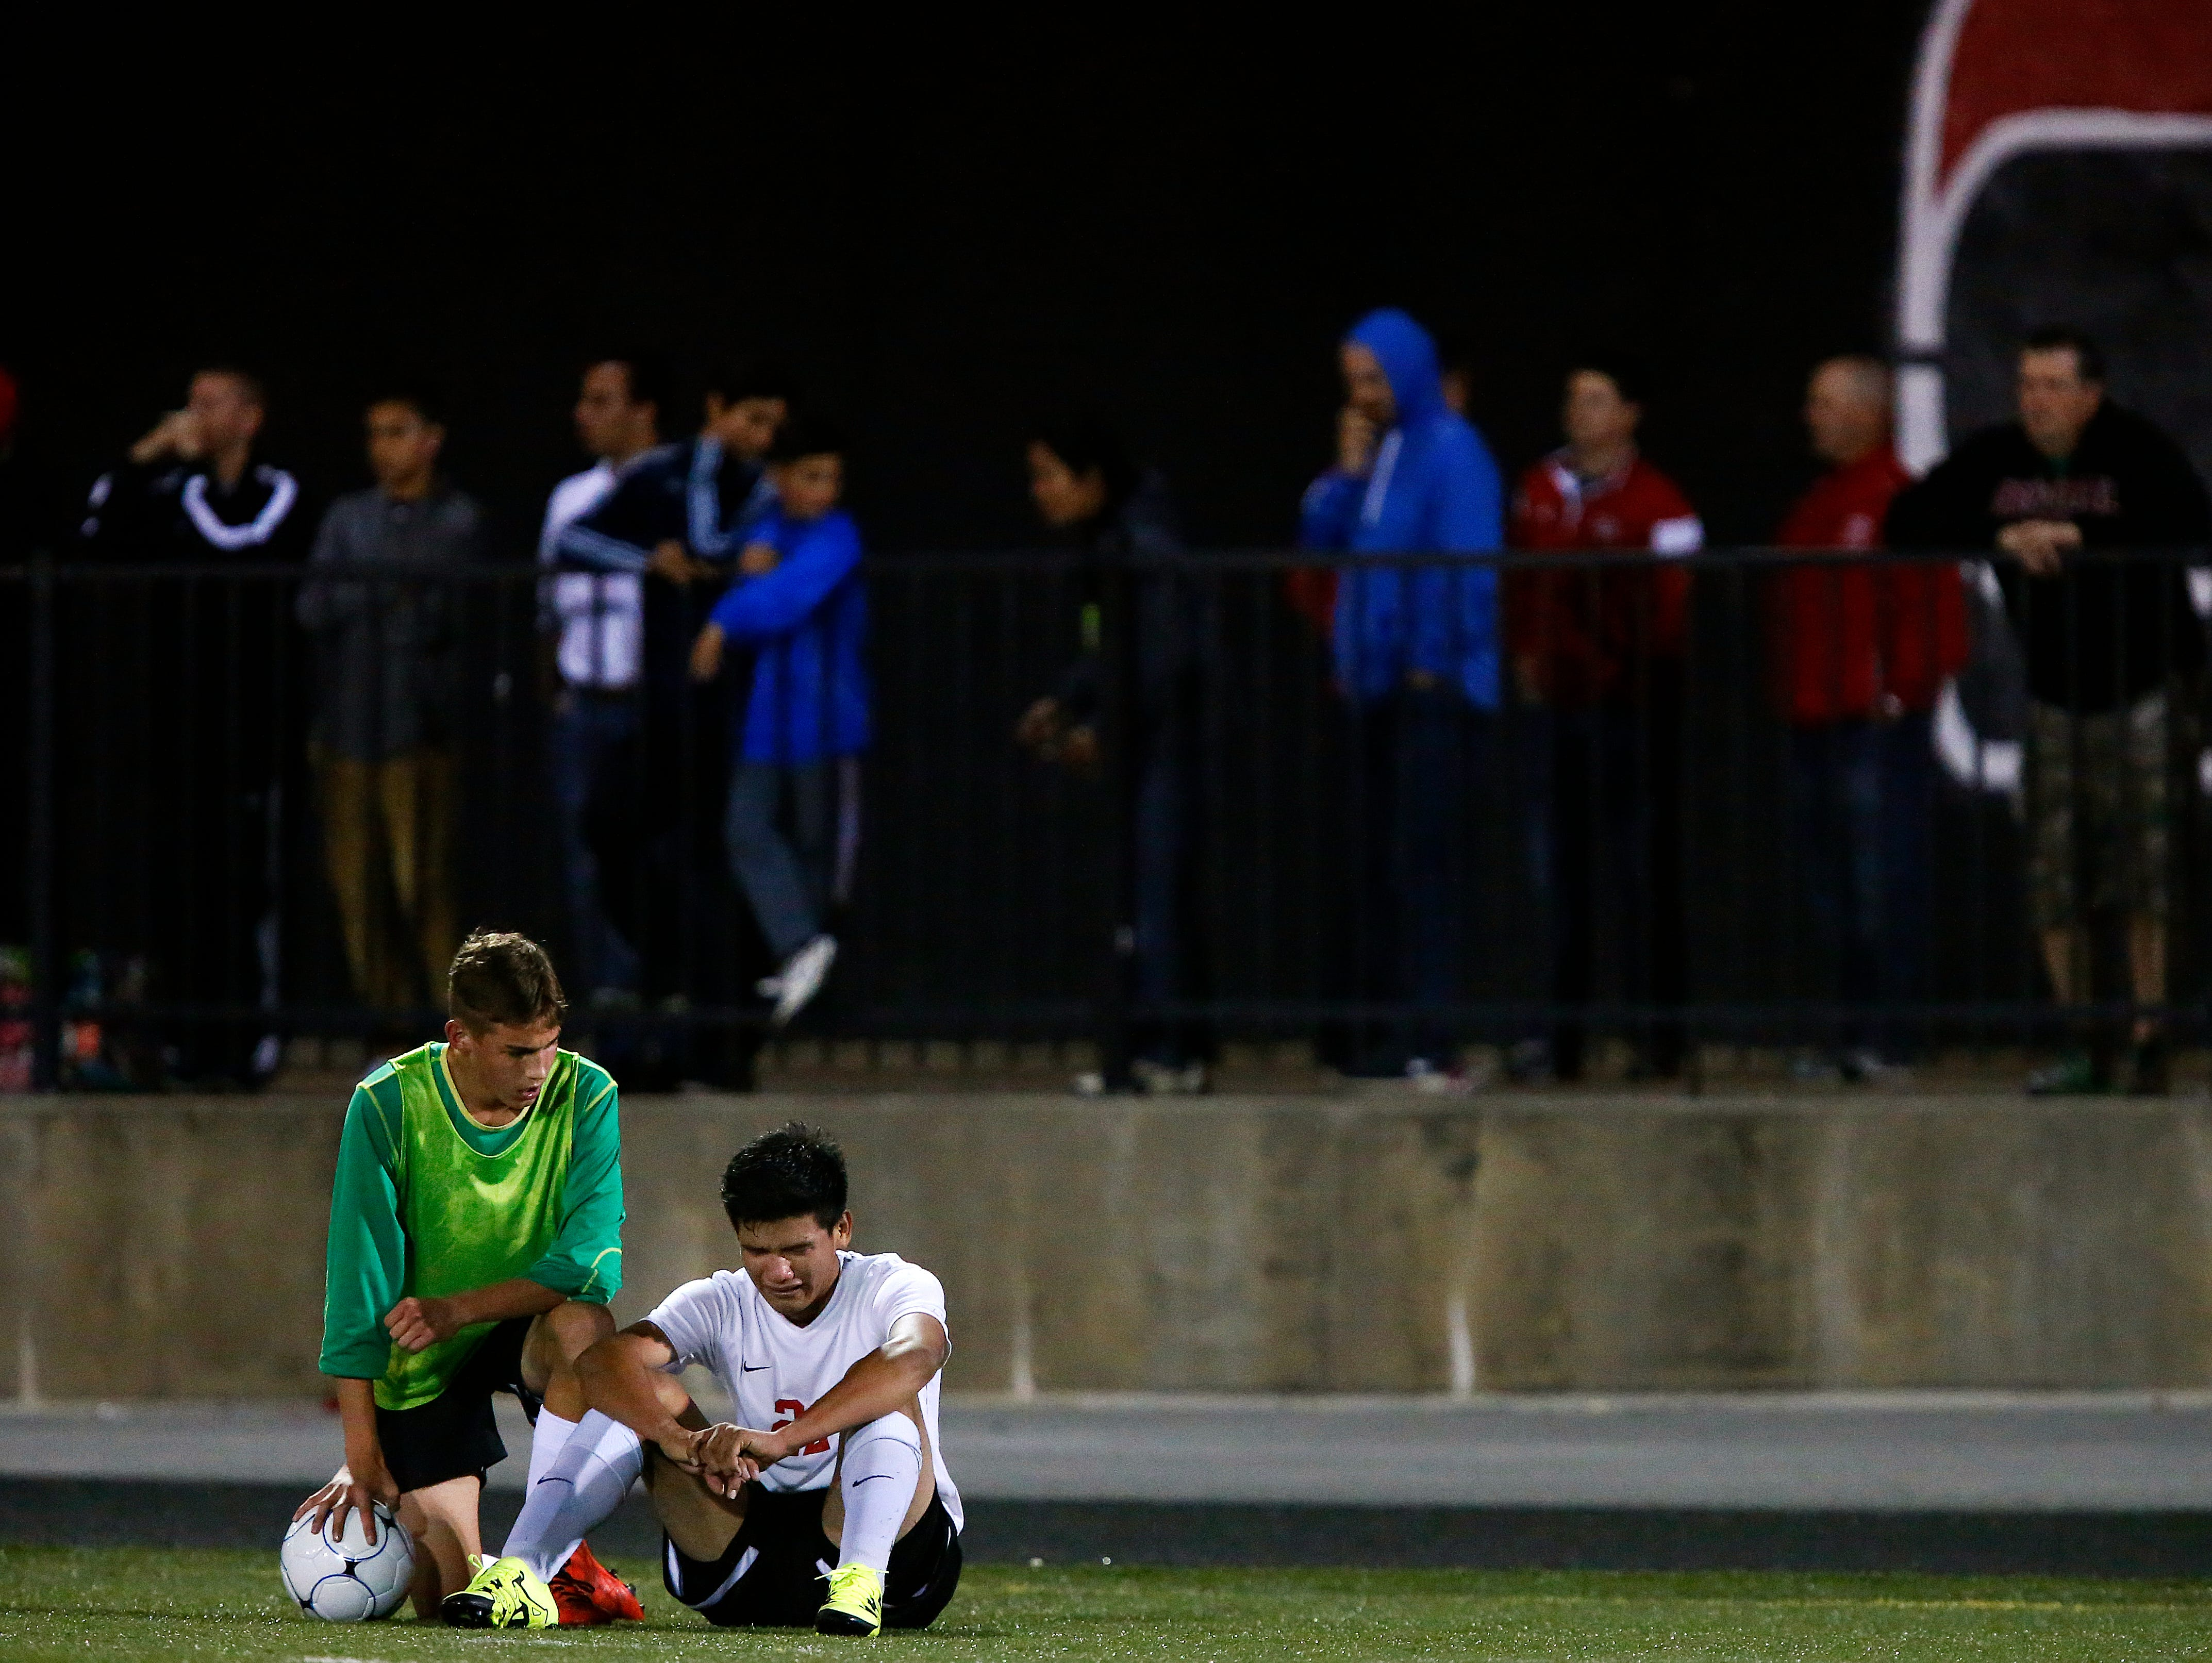 Central High School forward Oscar Leiva (22) is consoled by a teammate after the Bulldogs sectional playoff game against the Nixa Eagles at Harrison Stadium in Springfield, Mo. on Nov. 3, 2015. Nixa won the game 1-0 and kicked Central off of the playoffs.